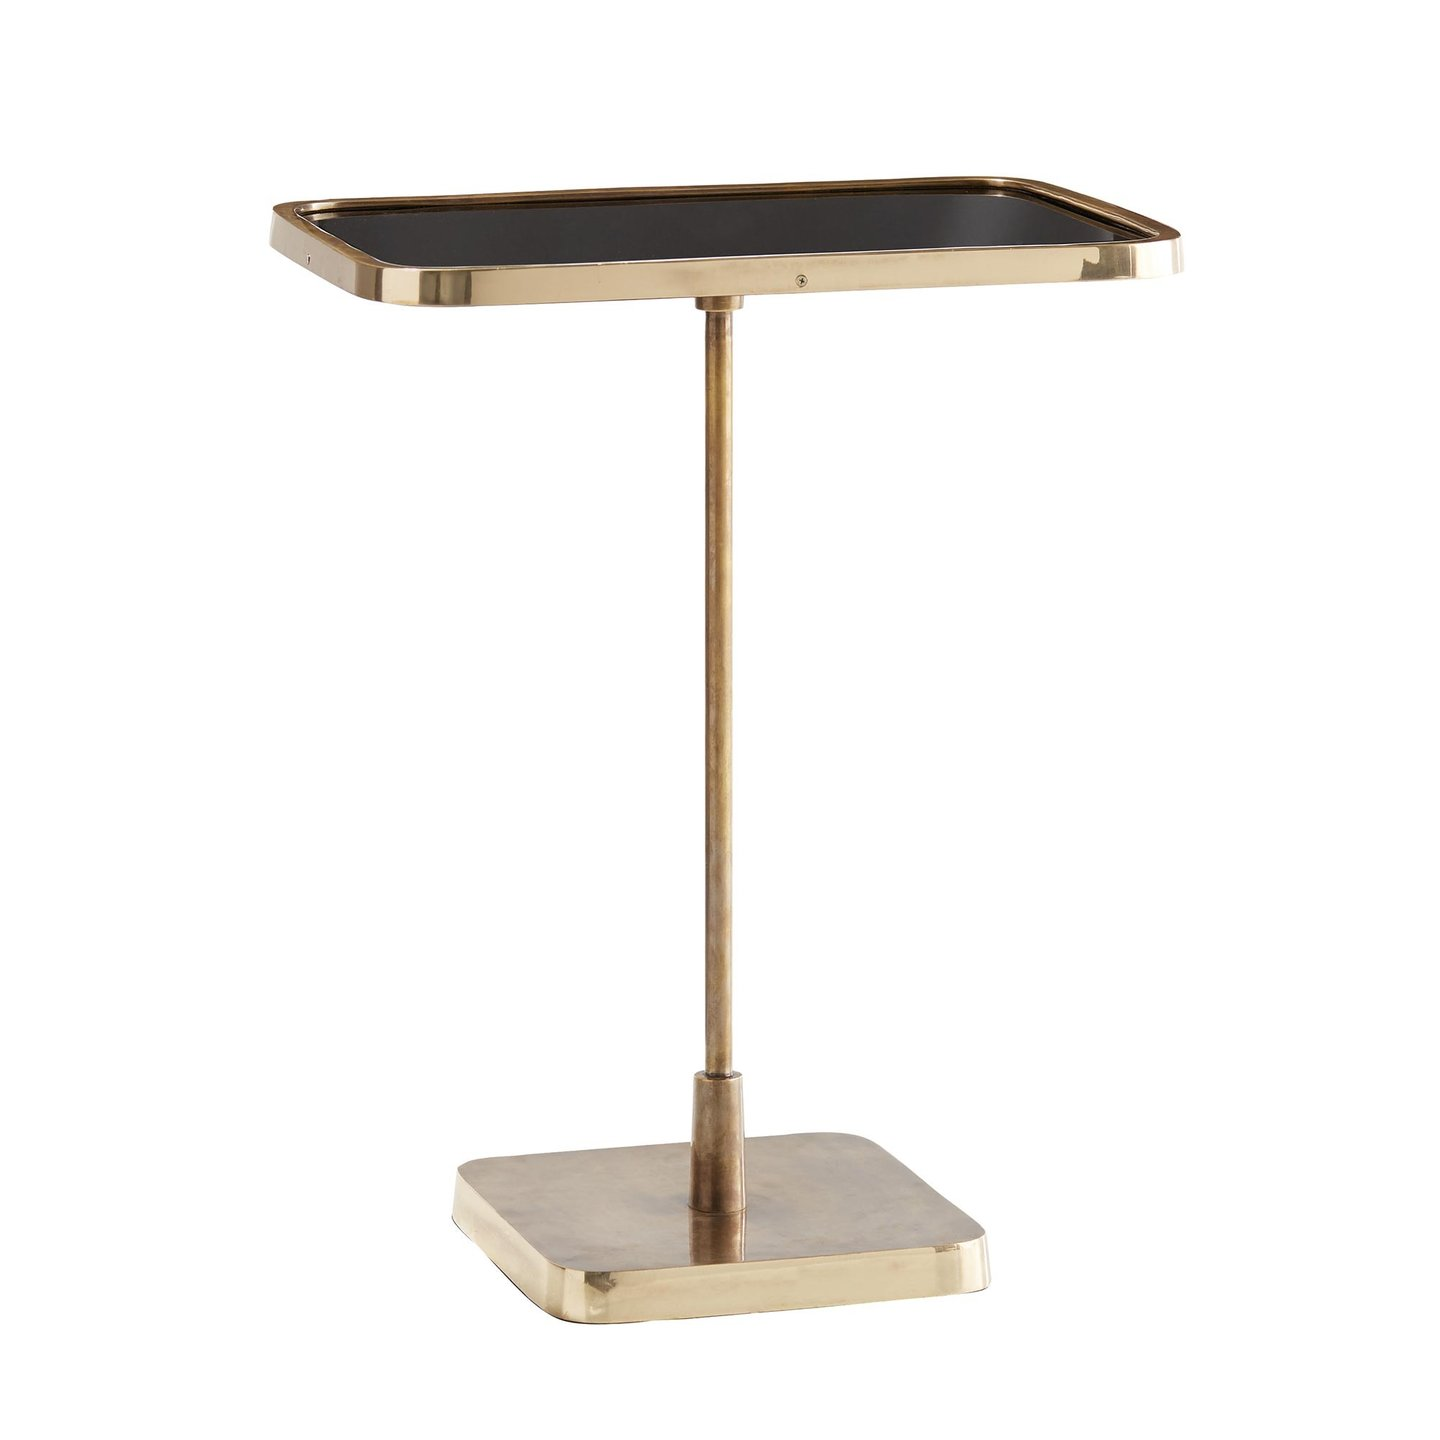 arteriors home celeste accent table antique brass kaela rectangle large cream wall clock white decorative storage cabinet adjustable height battery powered indoor lights shades